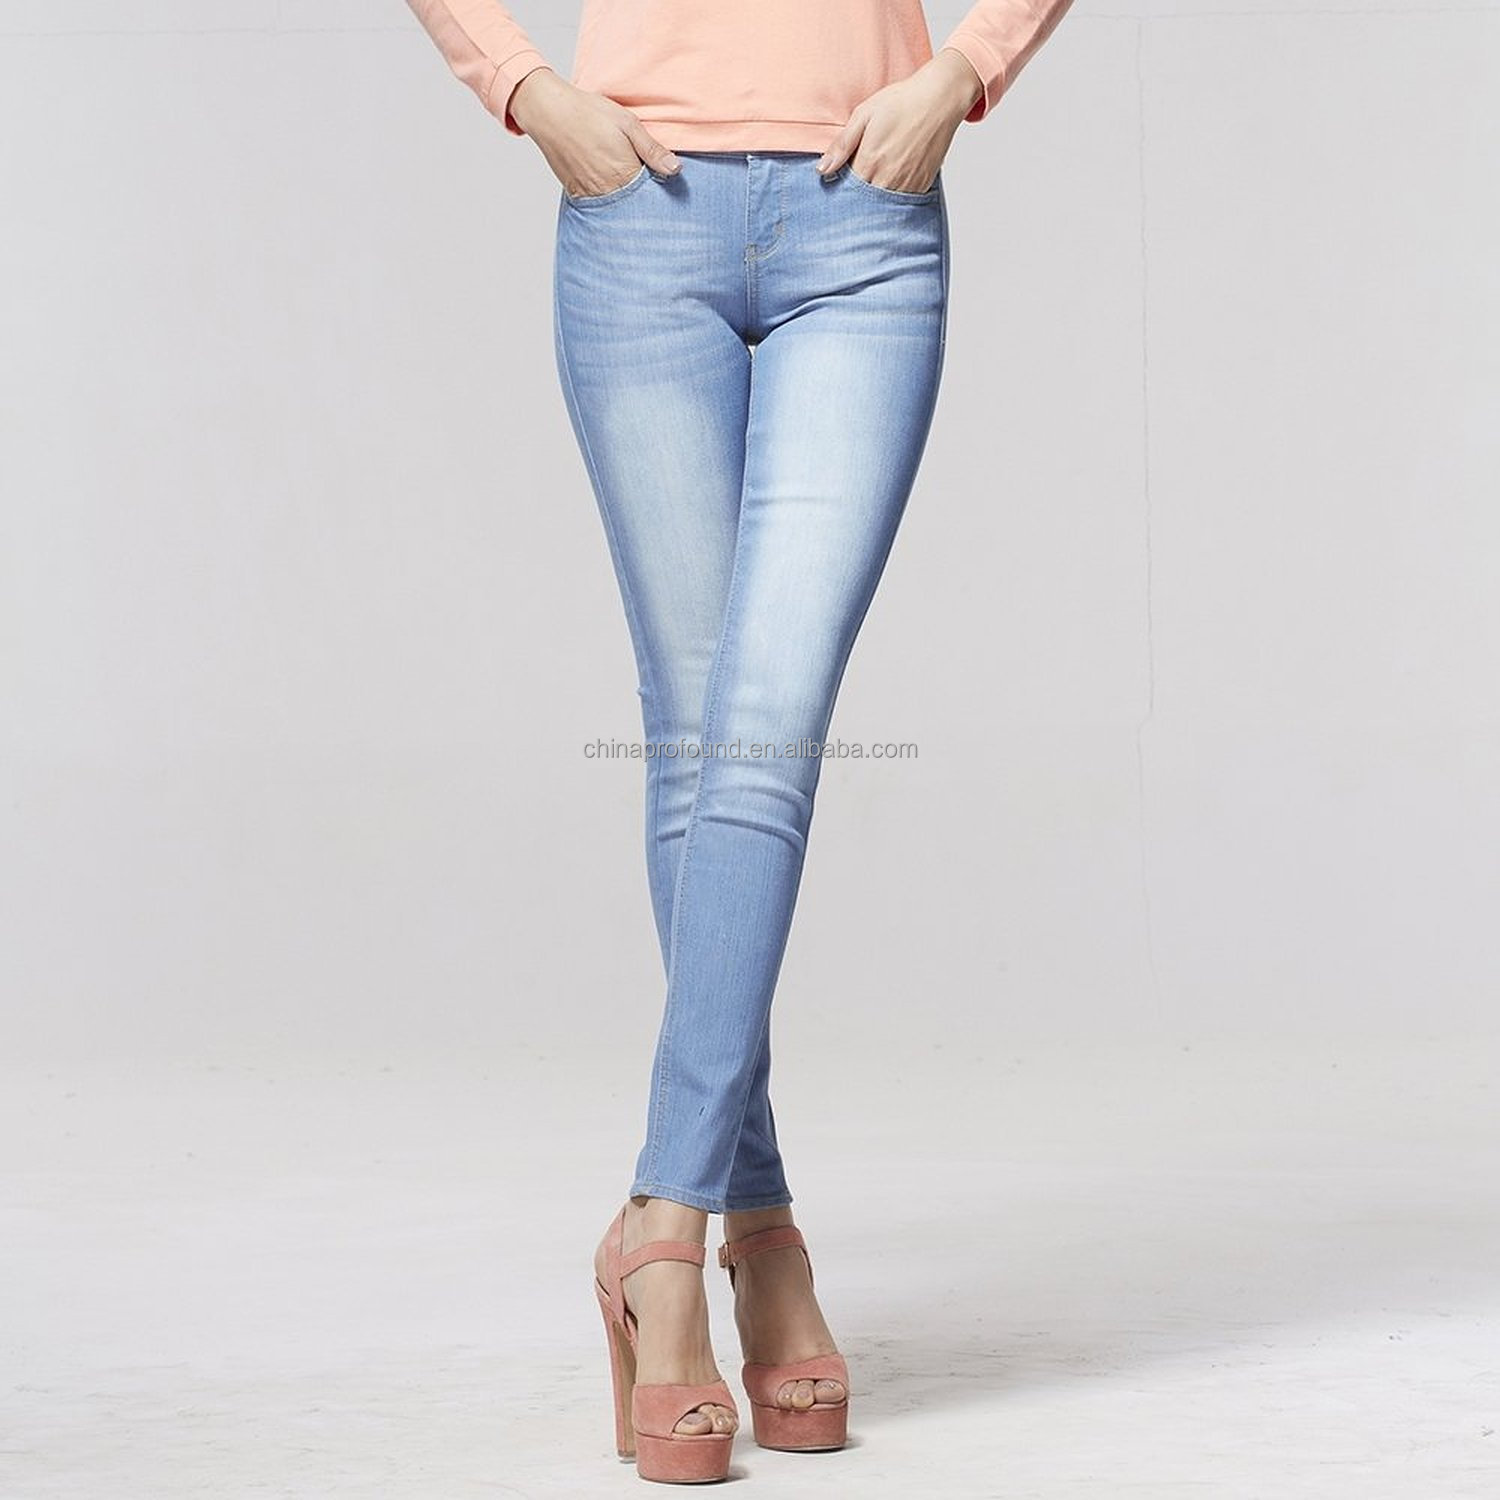 One of the most common complaints among pear-shaped women: If the jeans are roomy enough for their hips and butt, the waist is too big. But a contoured cut that doesn't gape at the waist can make.